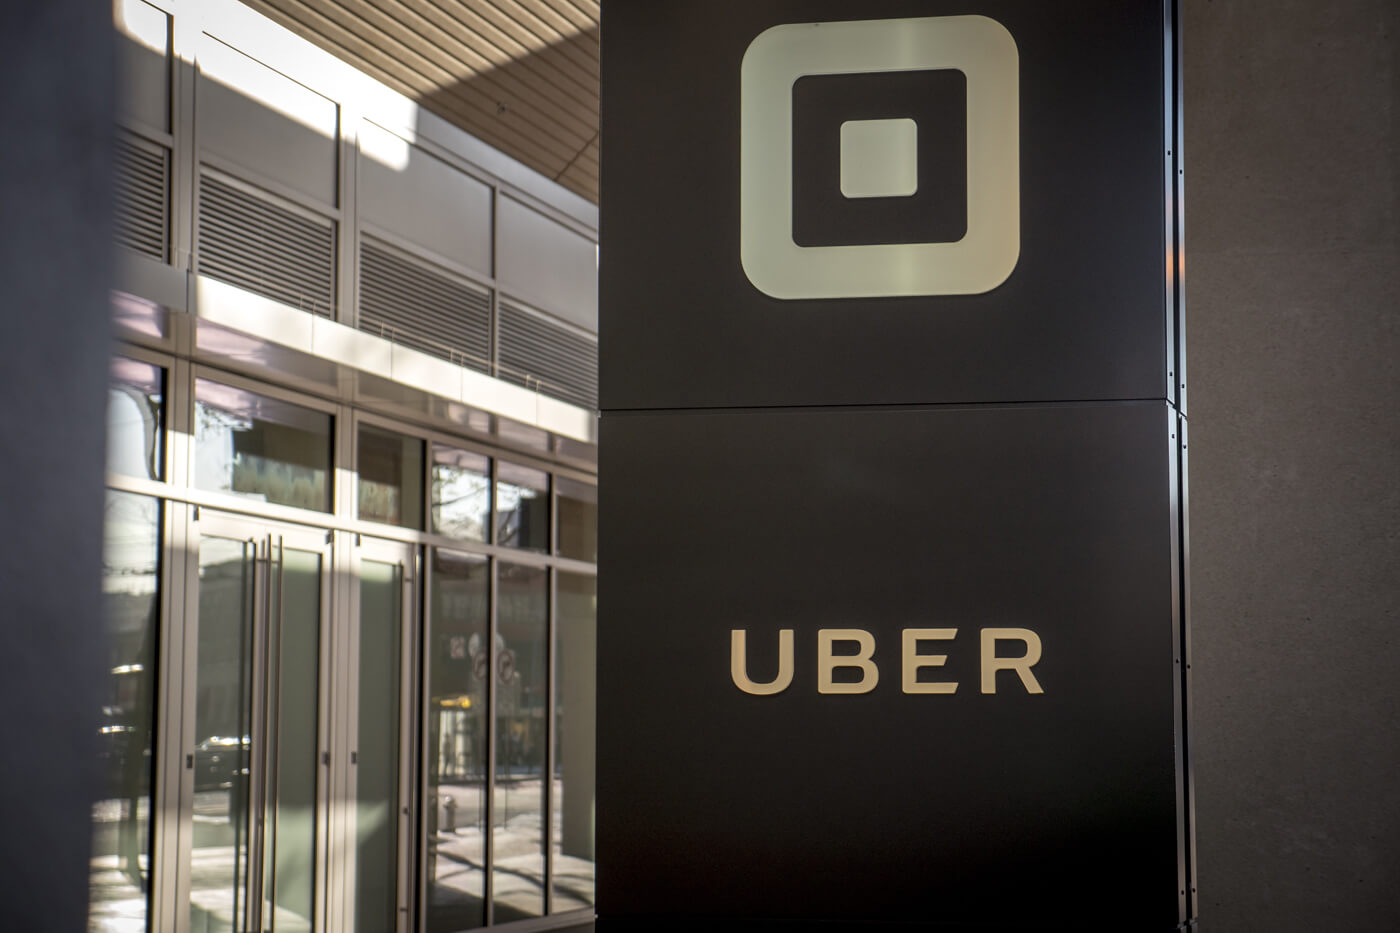 Uber stock soars as CEO says company is well positioned to ride out coronavirus